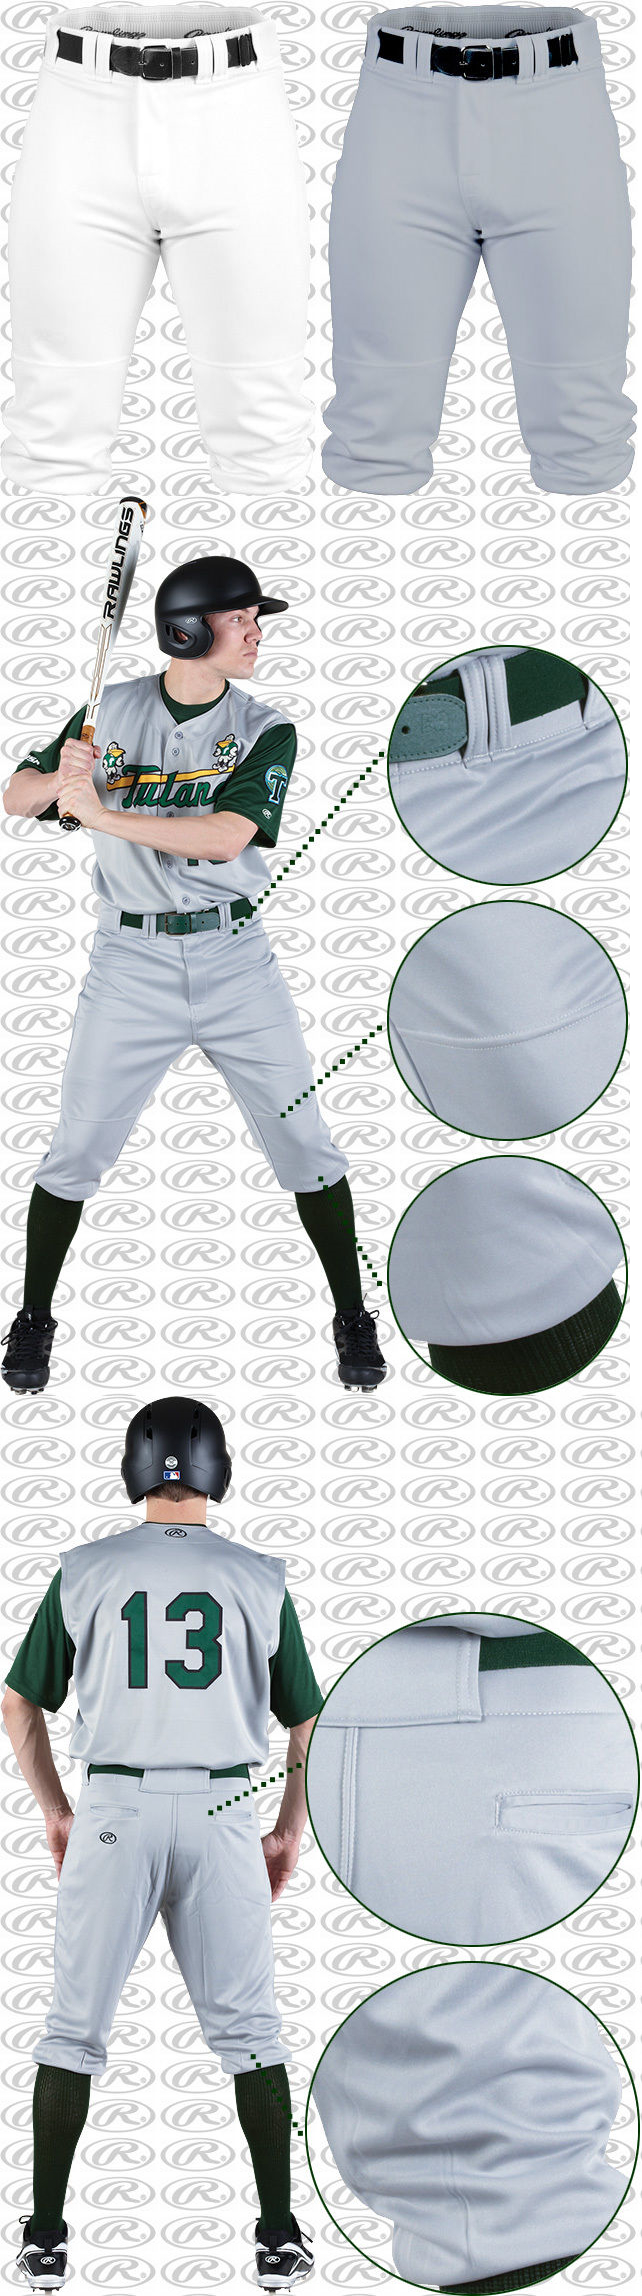 Other Baseball Clothing and Accs 159062: Rawlings Premium Knee-High Fit Knicker Baseball Pants Bp150k White Or Grey -> BUY IT NOW ONLY: $31.95 on eBay!